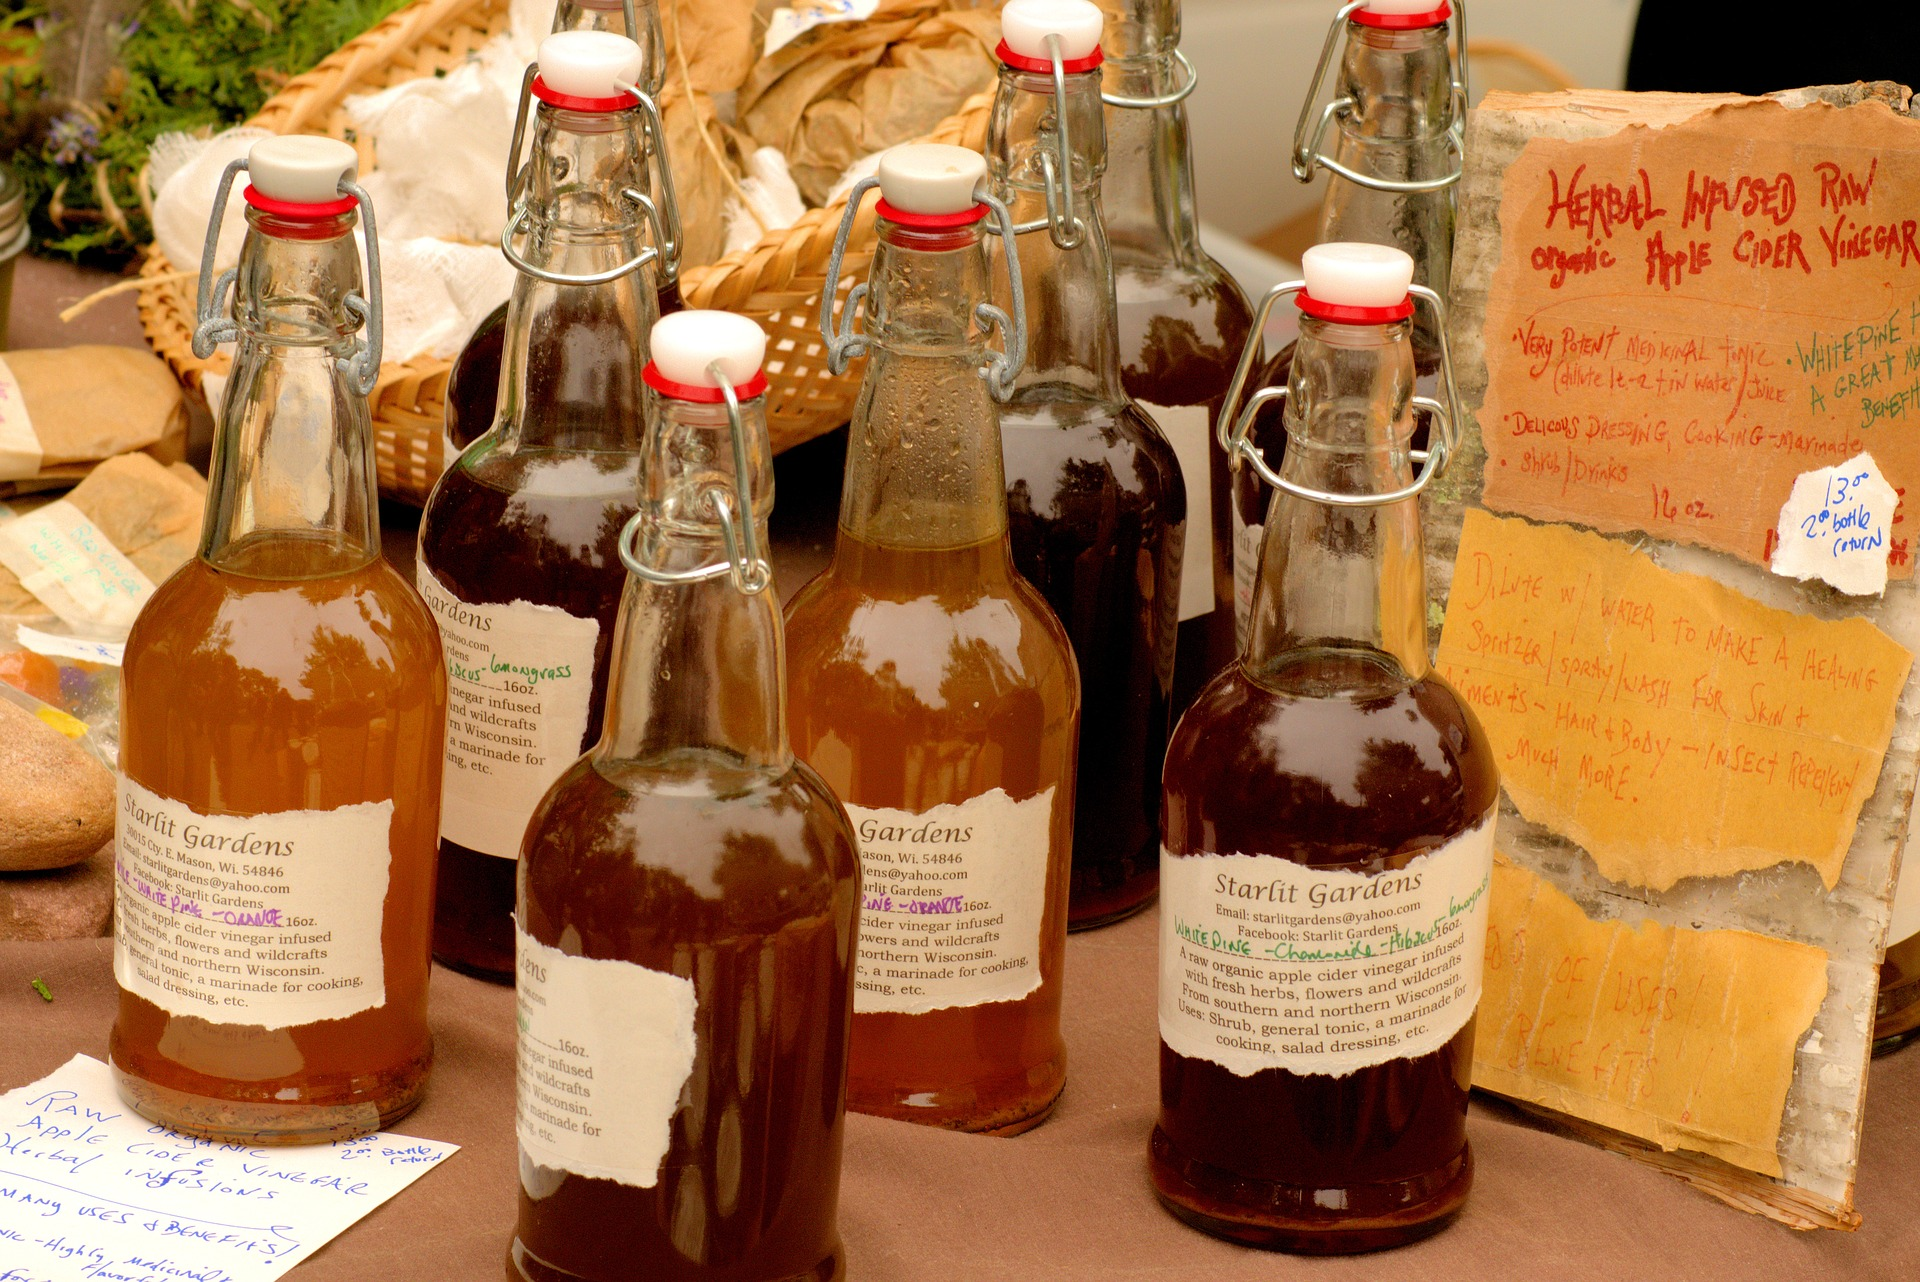 Marinades in glass bottles